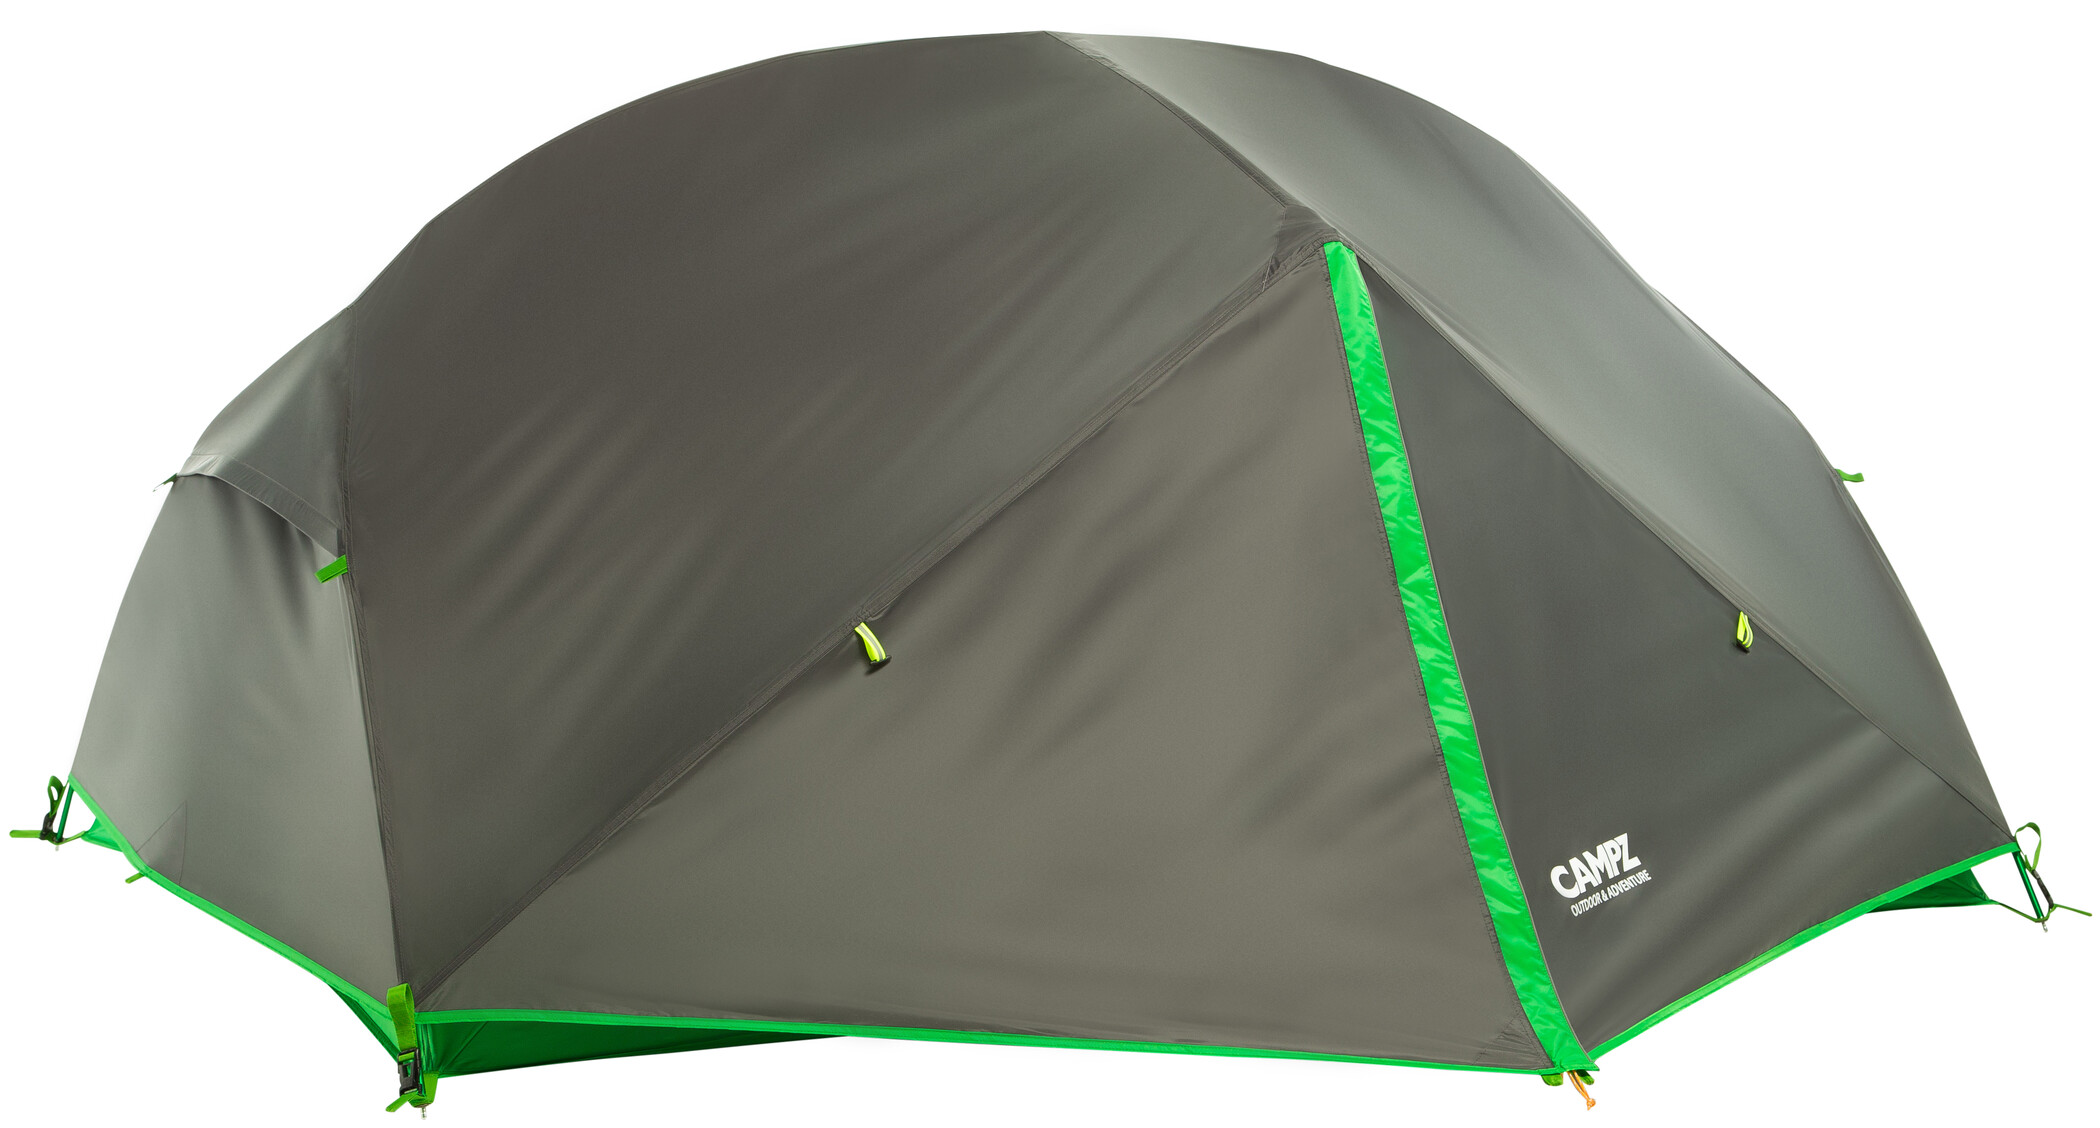 CAMPZ Lacanau 2P Telt, deep grey/green (2019) | Misc. Transportation and Storage